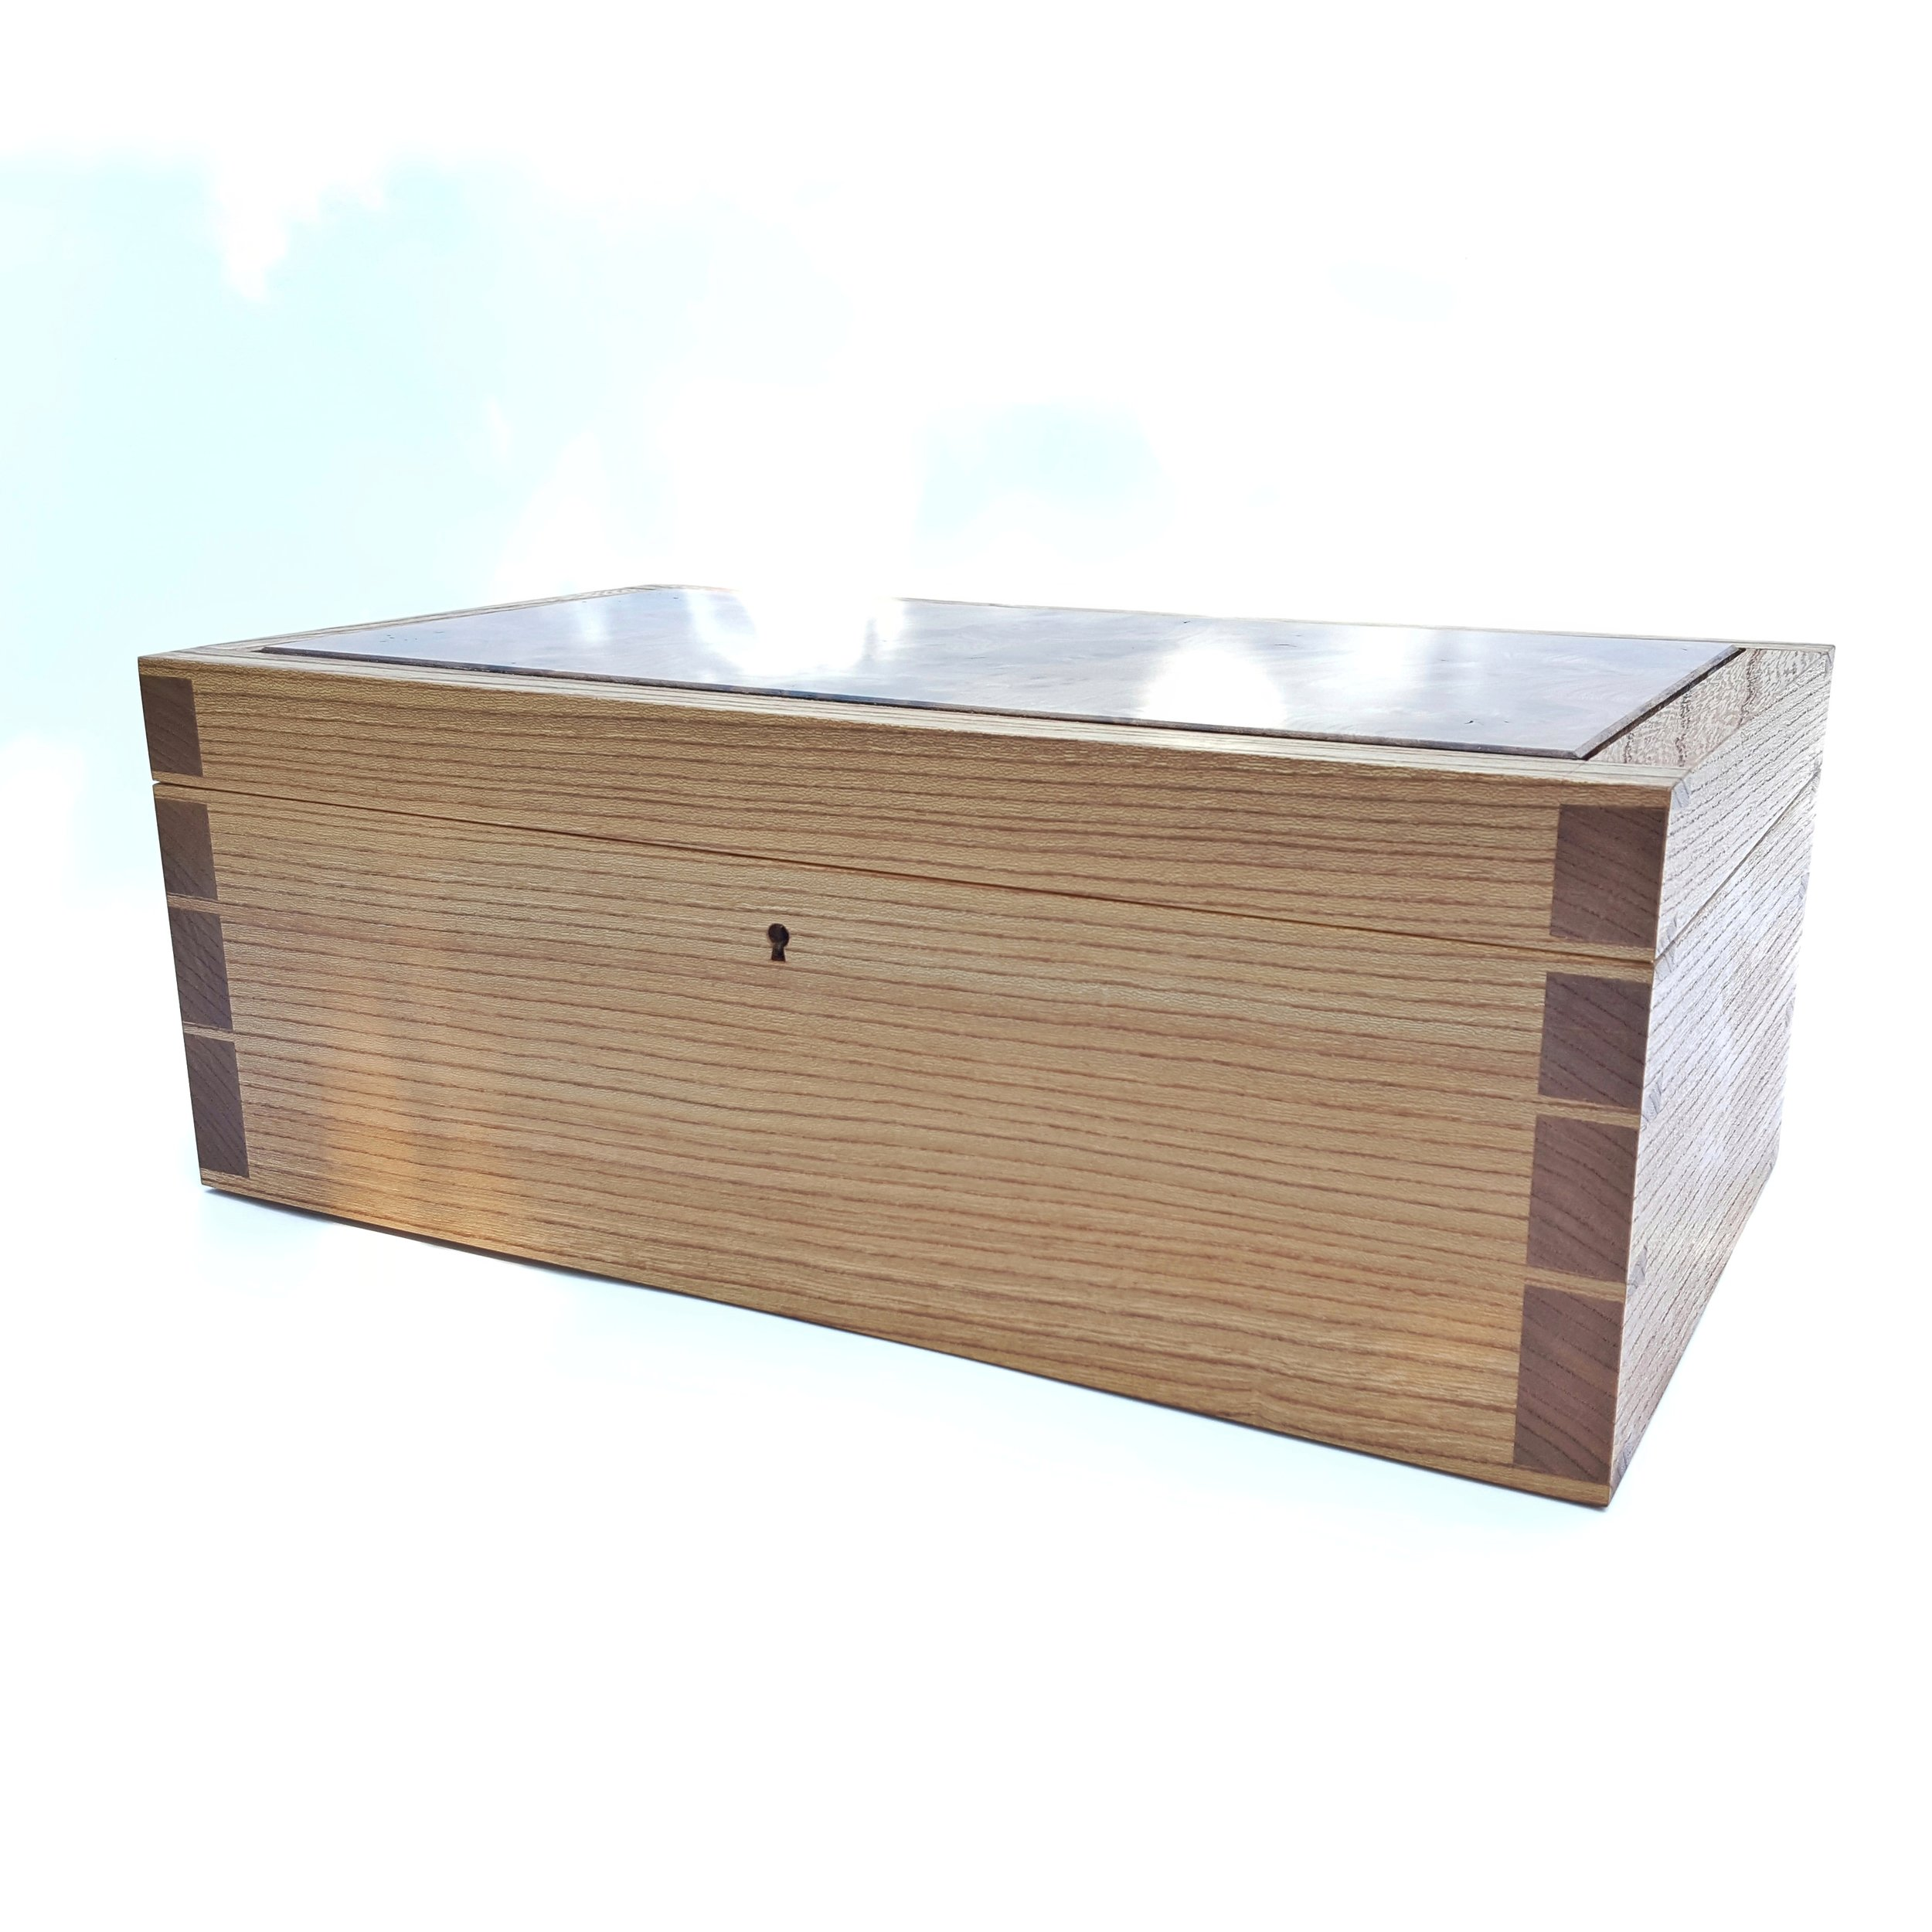 Elm jewellery box - low front view.jpeg